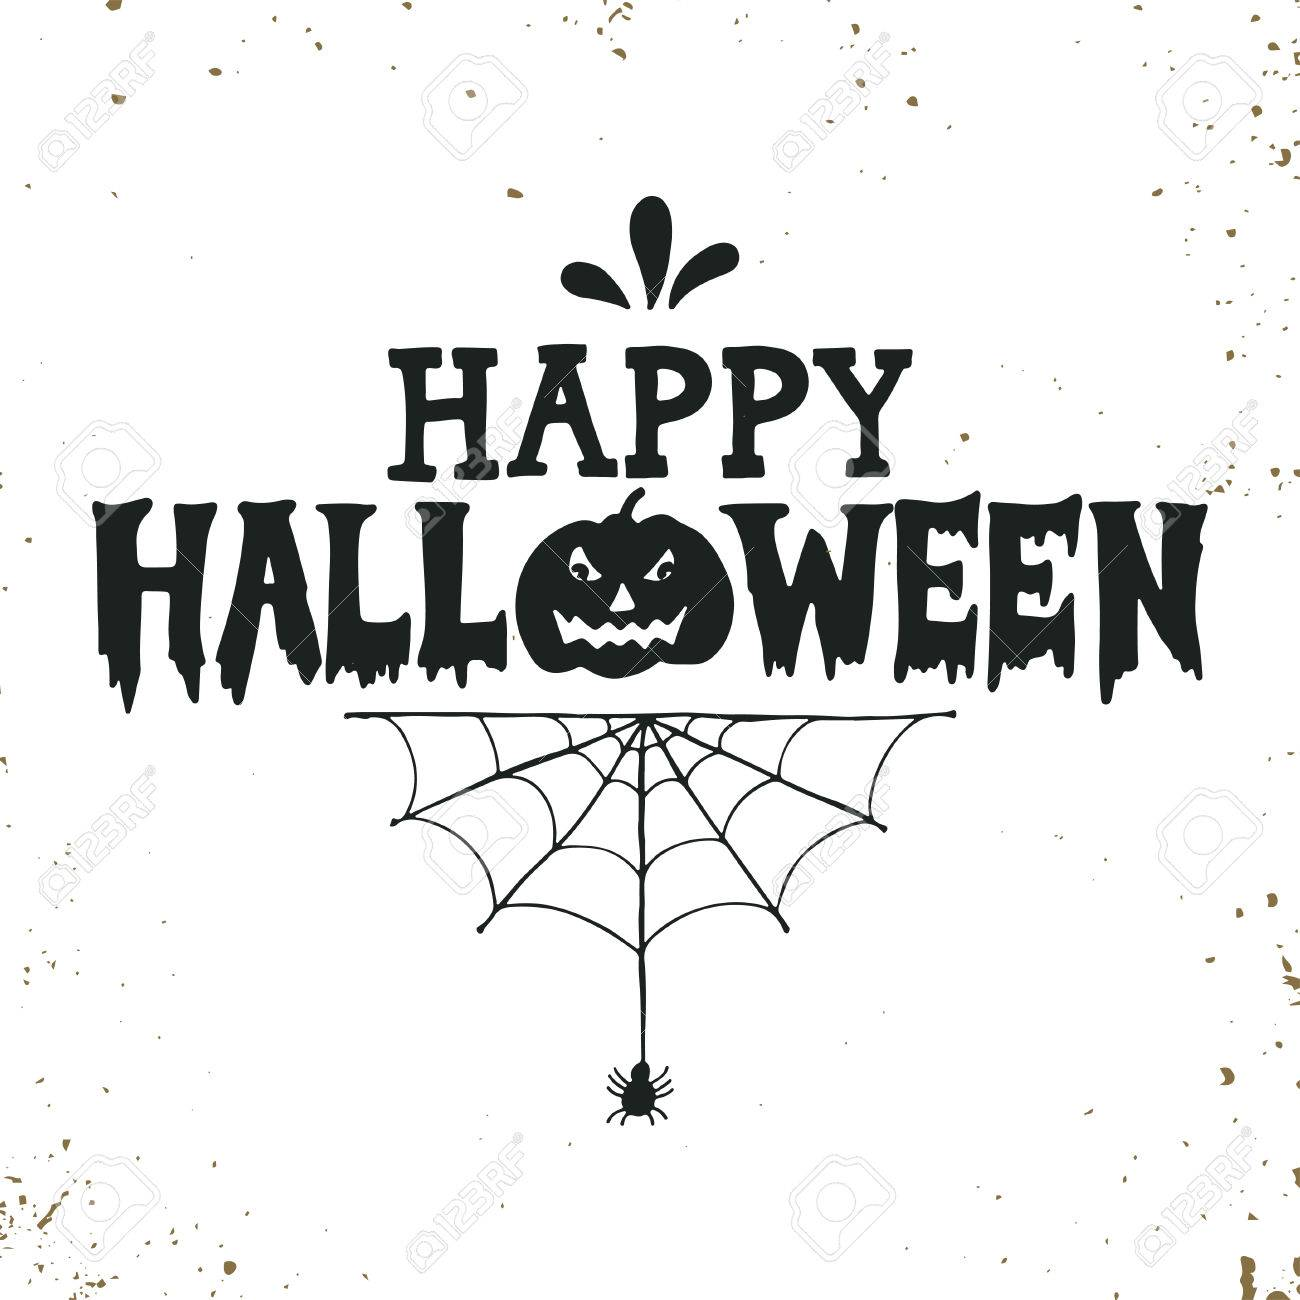 Hand Drawn Happy Halloween Lettering With A Pumpkin And Spider Royalty Free Cliparts Vectors And Stock Illustration Image 45687159